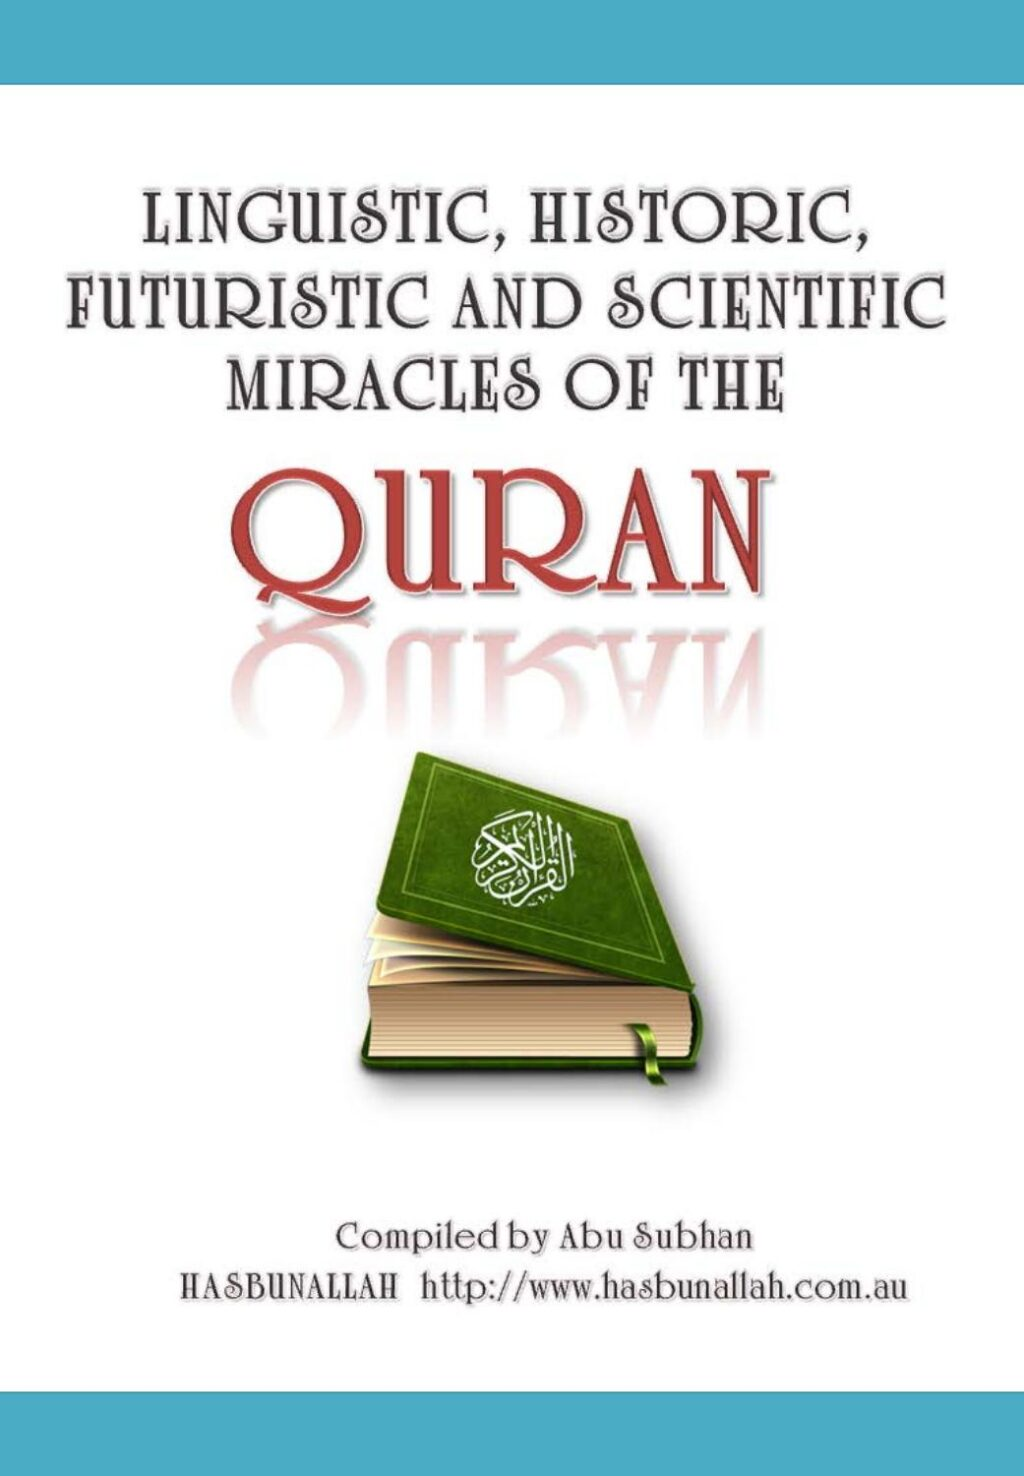 """""""the Quran miracles"""" The relation between Qur'an & science (1/3)"""